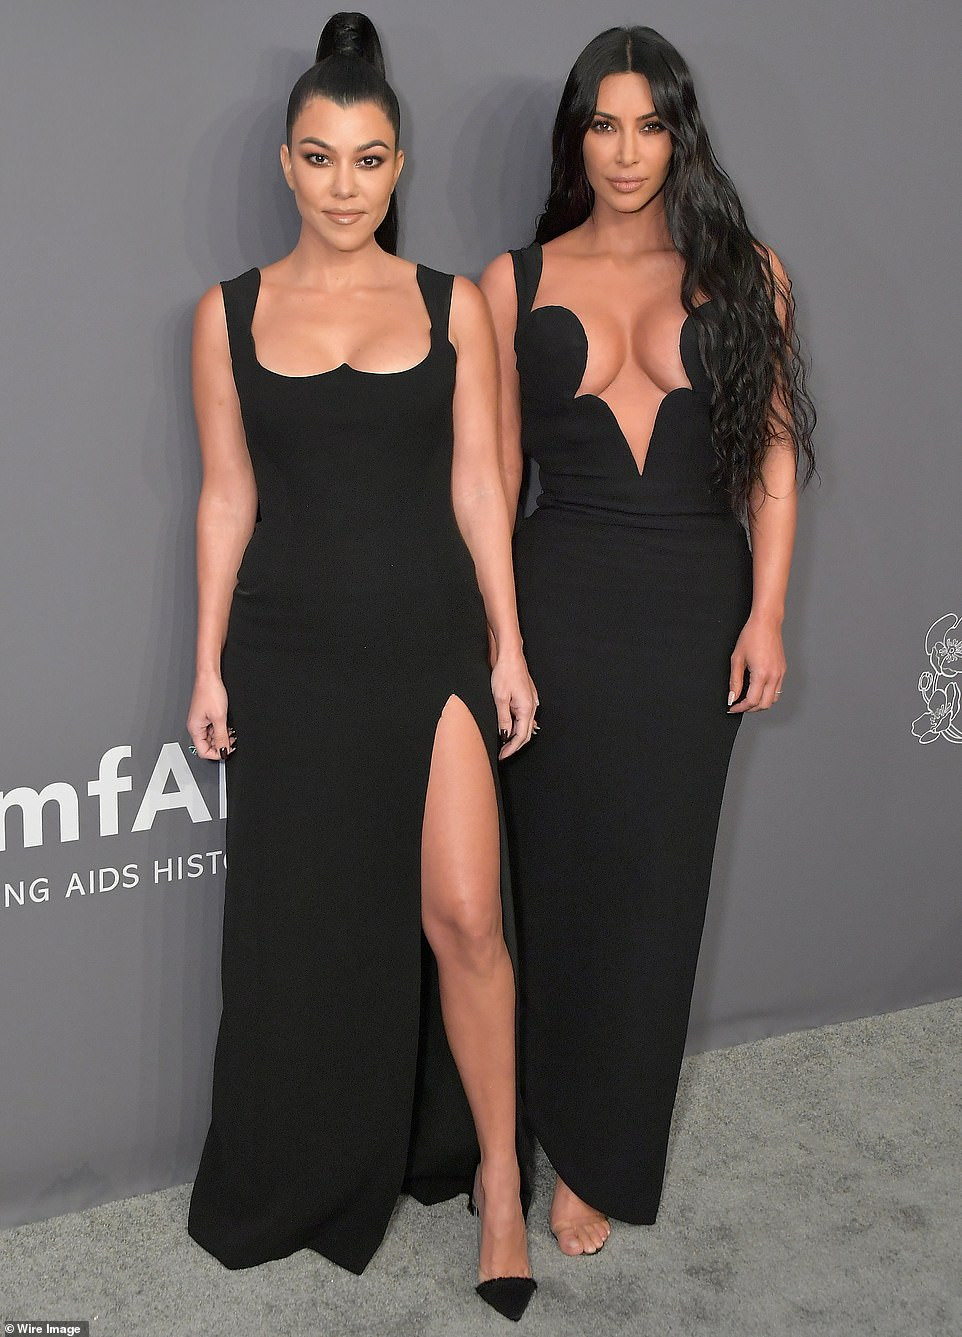 Kim and Kourtney Kardashian flaunts extreme cleavage in glamorous black gowns as they attend amfAR Gala in New York together (Photos)